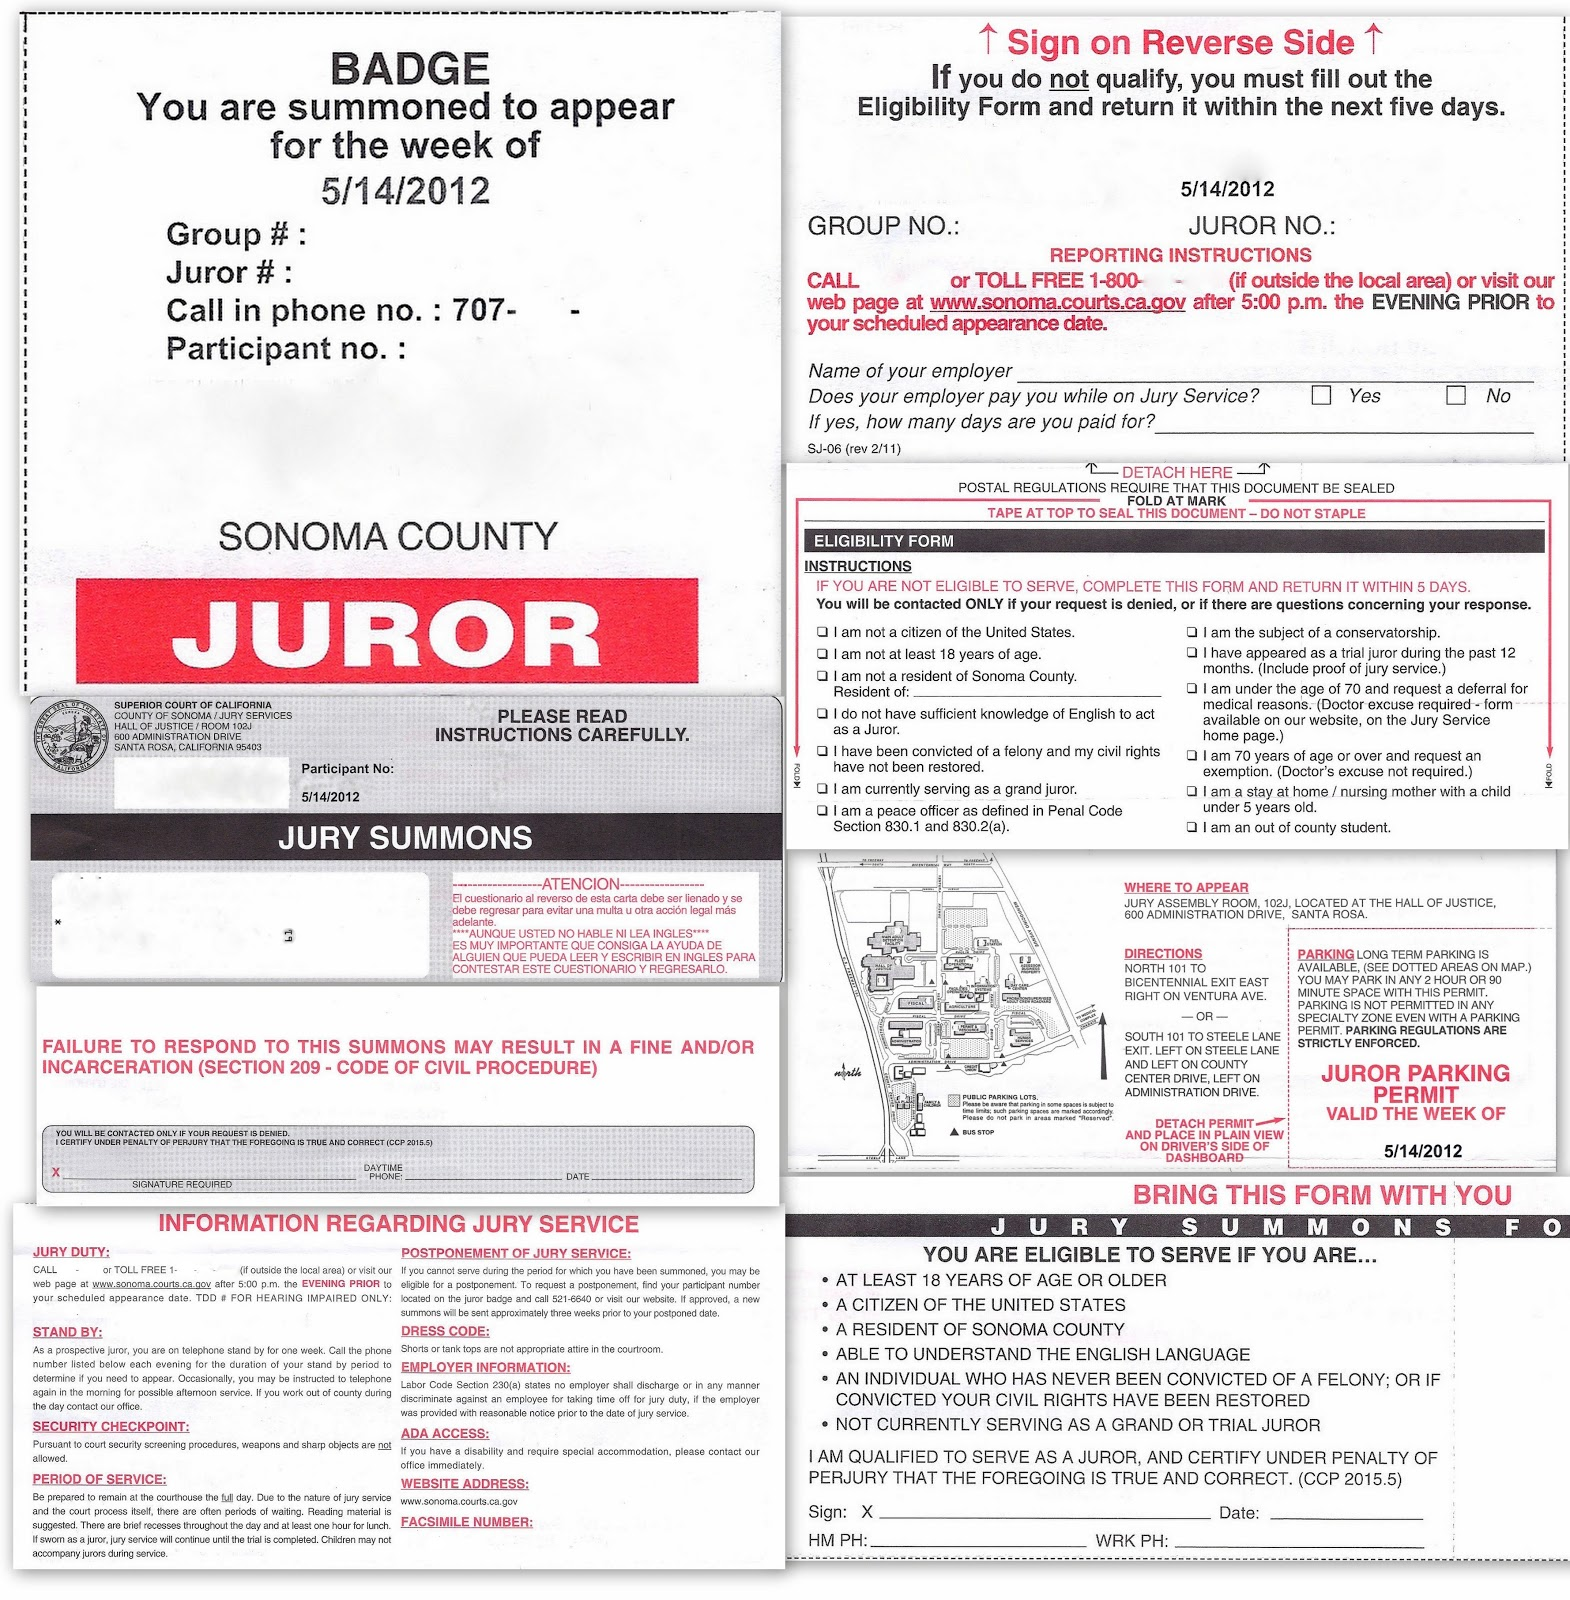 jury duty i have been dreading the thought of going through that process yet again i have served on three juries in the past and i have been called